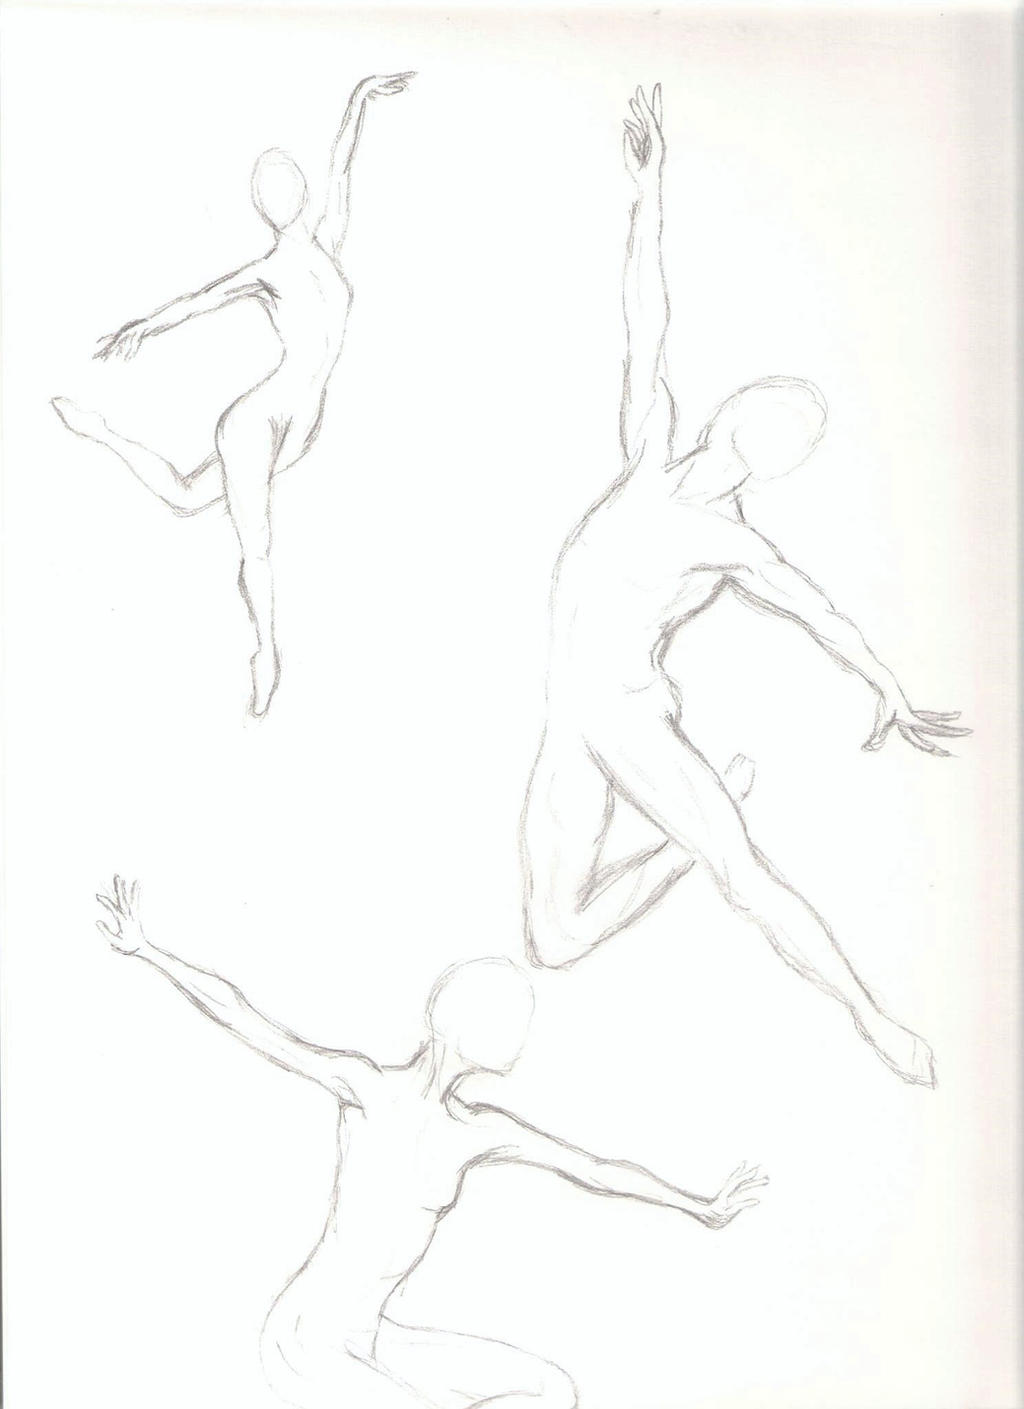 Anatomy Practice - Ballet Dancers by TehLookingGlass on DeviantArt